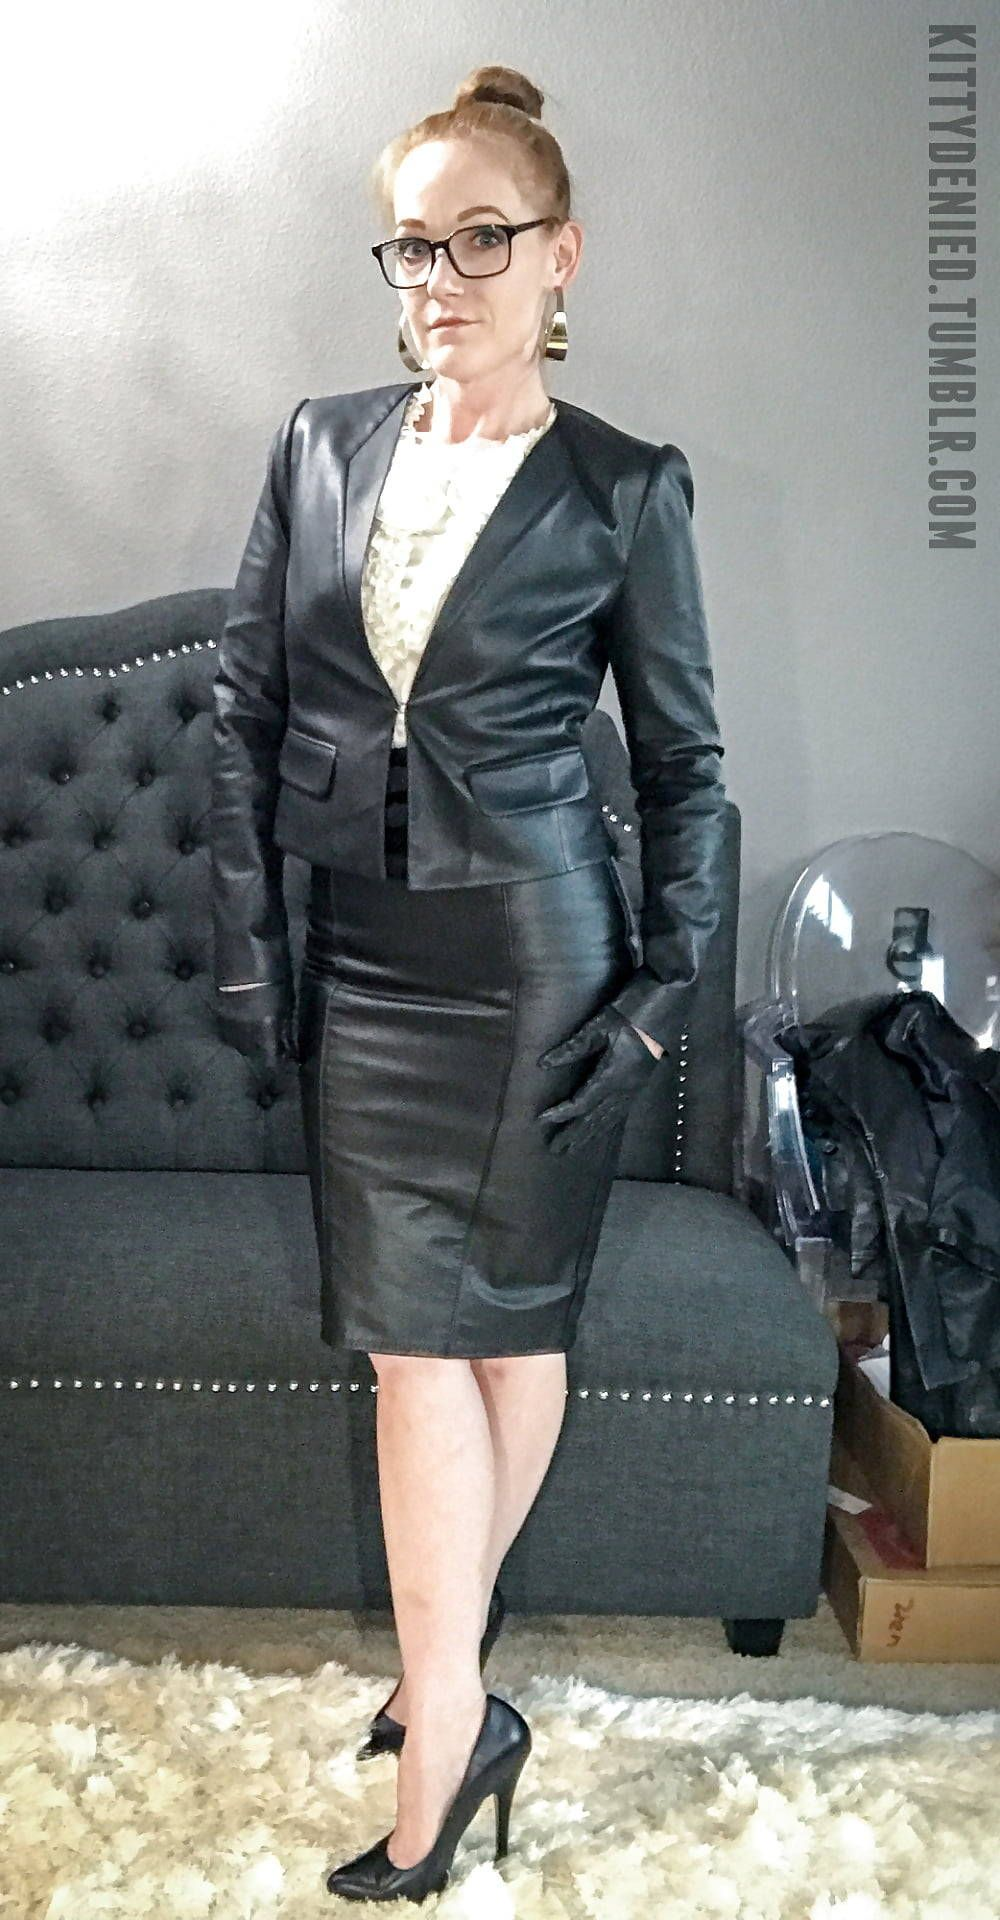 Mature Female Authority   leder in 2019   Leather, Leather dresses ... 0a1bd0565e1